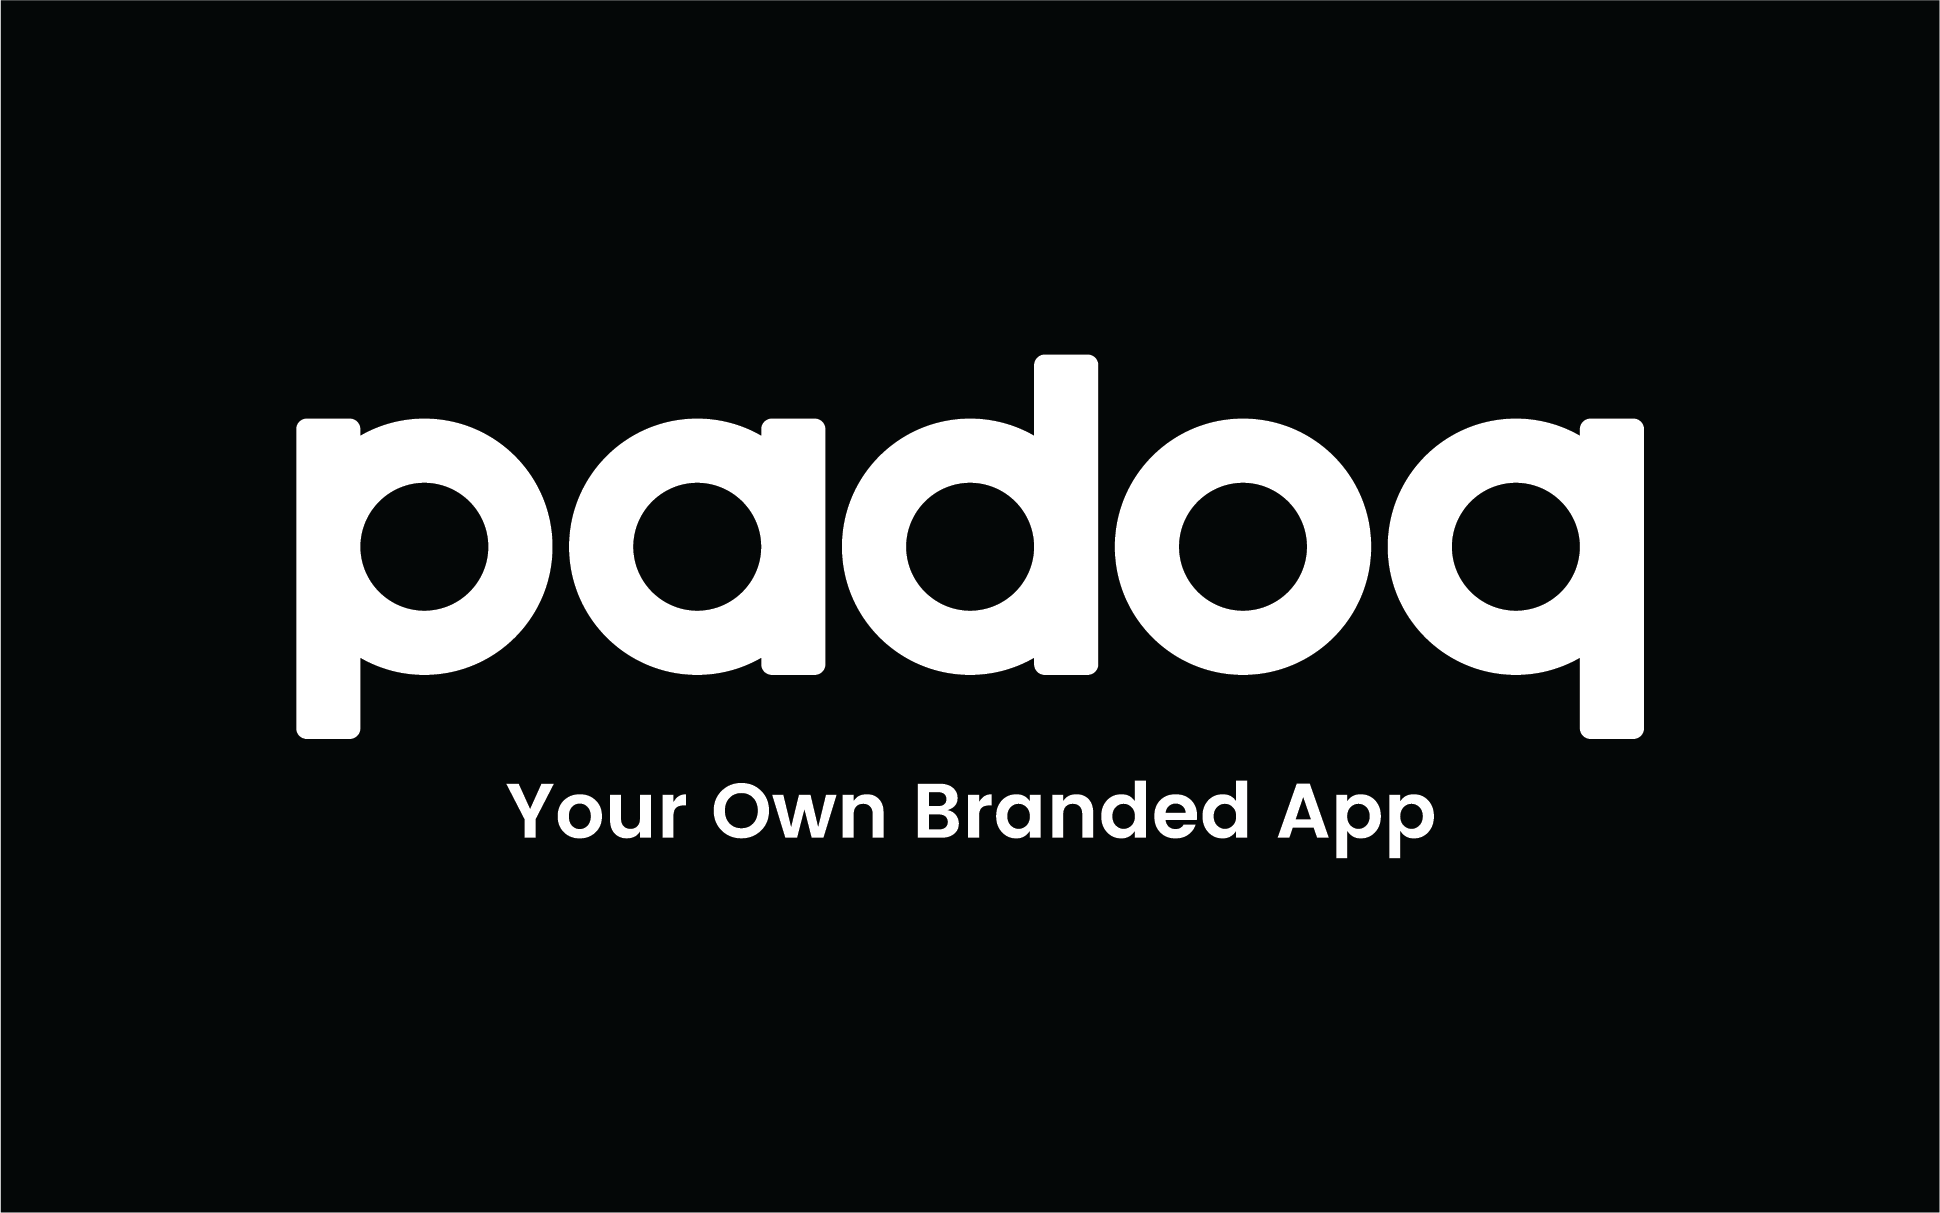 Padoq Logo Your Own Branded App Black Background (1)